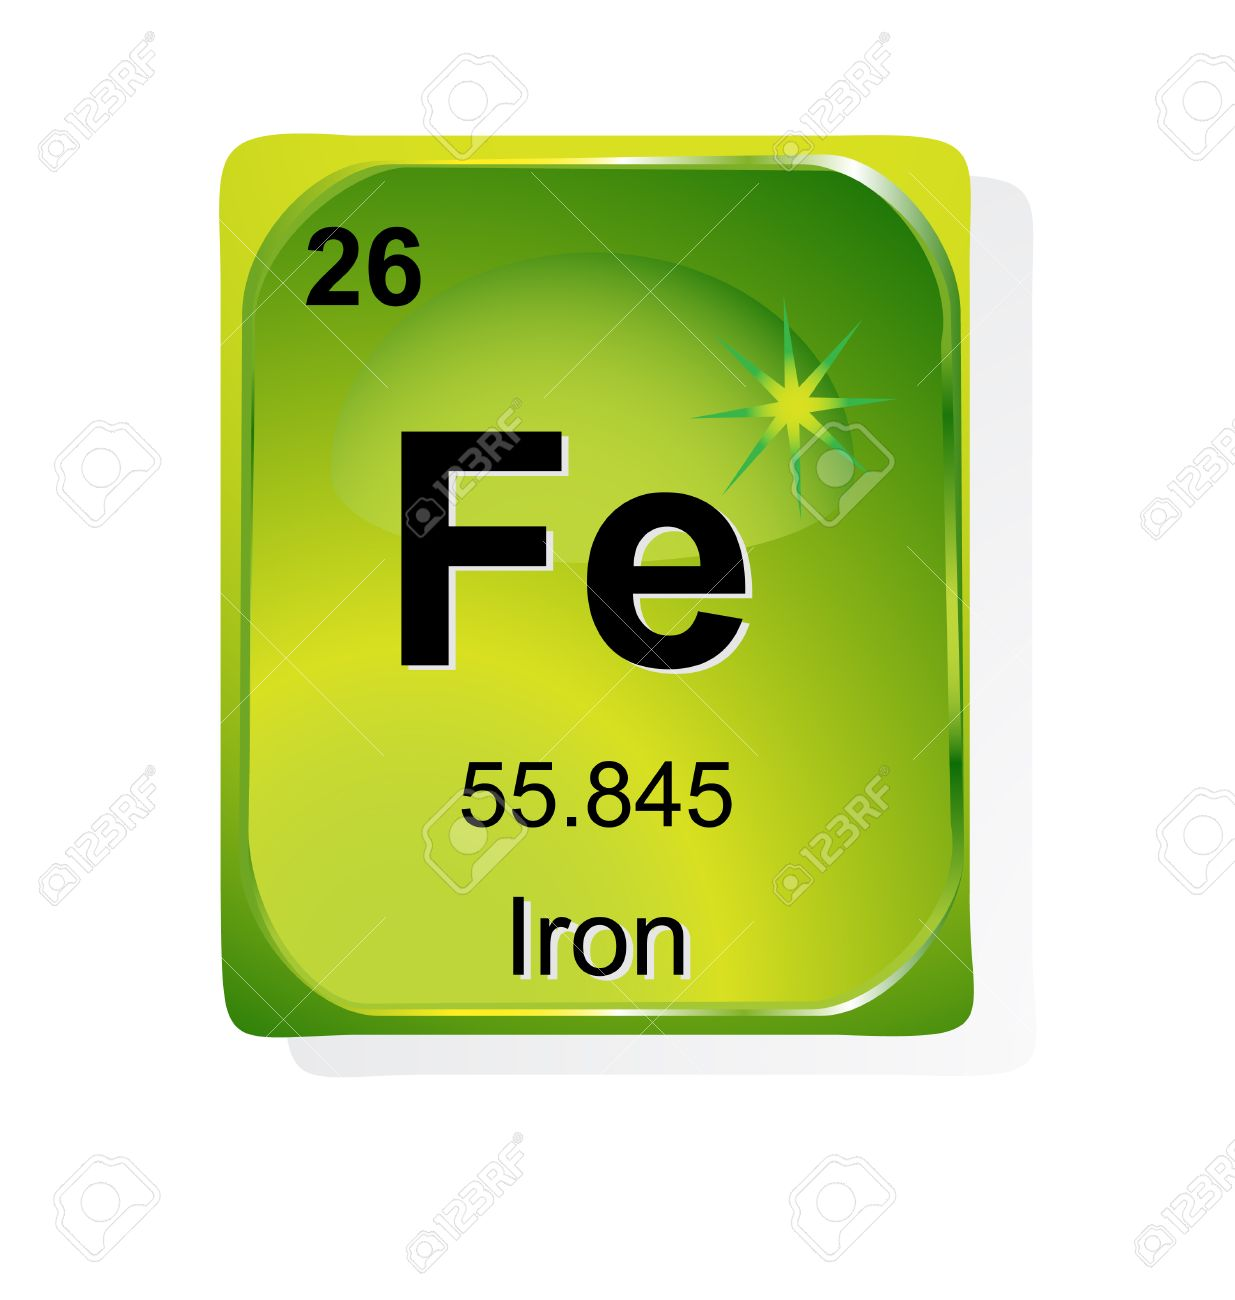 Atomic symbol for iron choice image symbol and sign ideas iron chemical element with atomic number symbol and weight iron chemical element with atomic number symbol buycottarizona